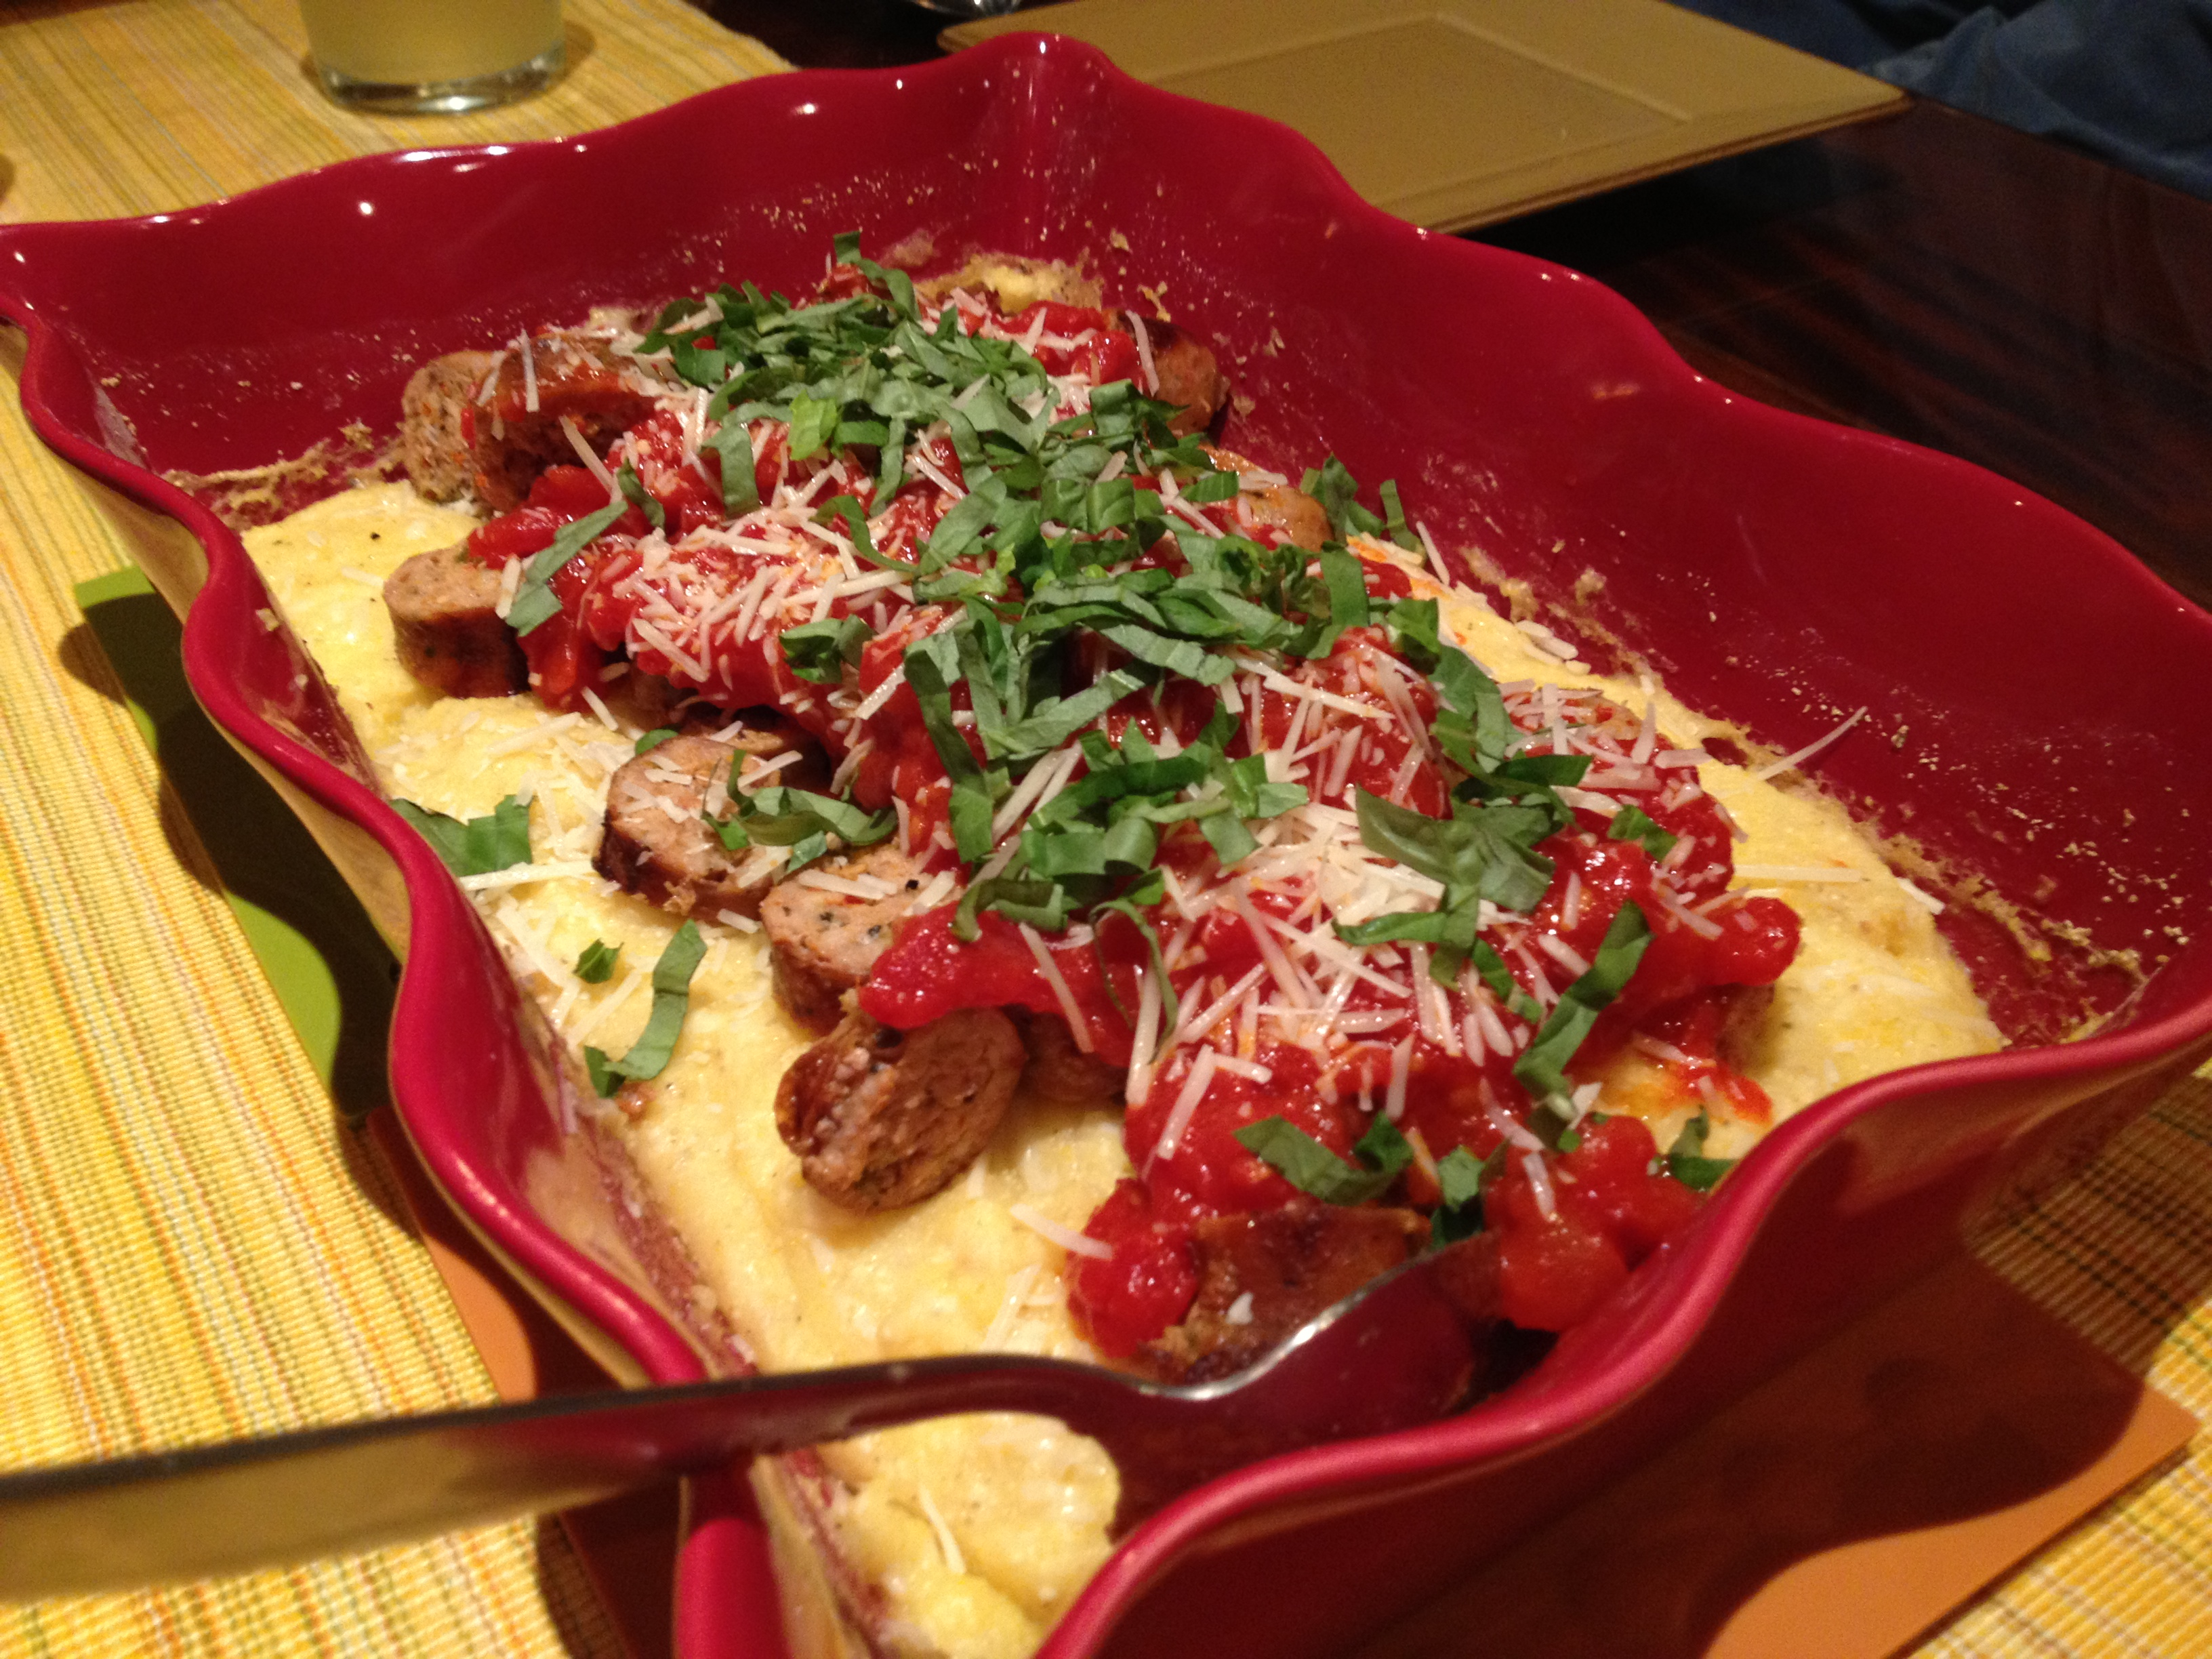 The entrée – Baked Polenta with Tomato-Basil Sauce and Sausage: